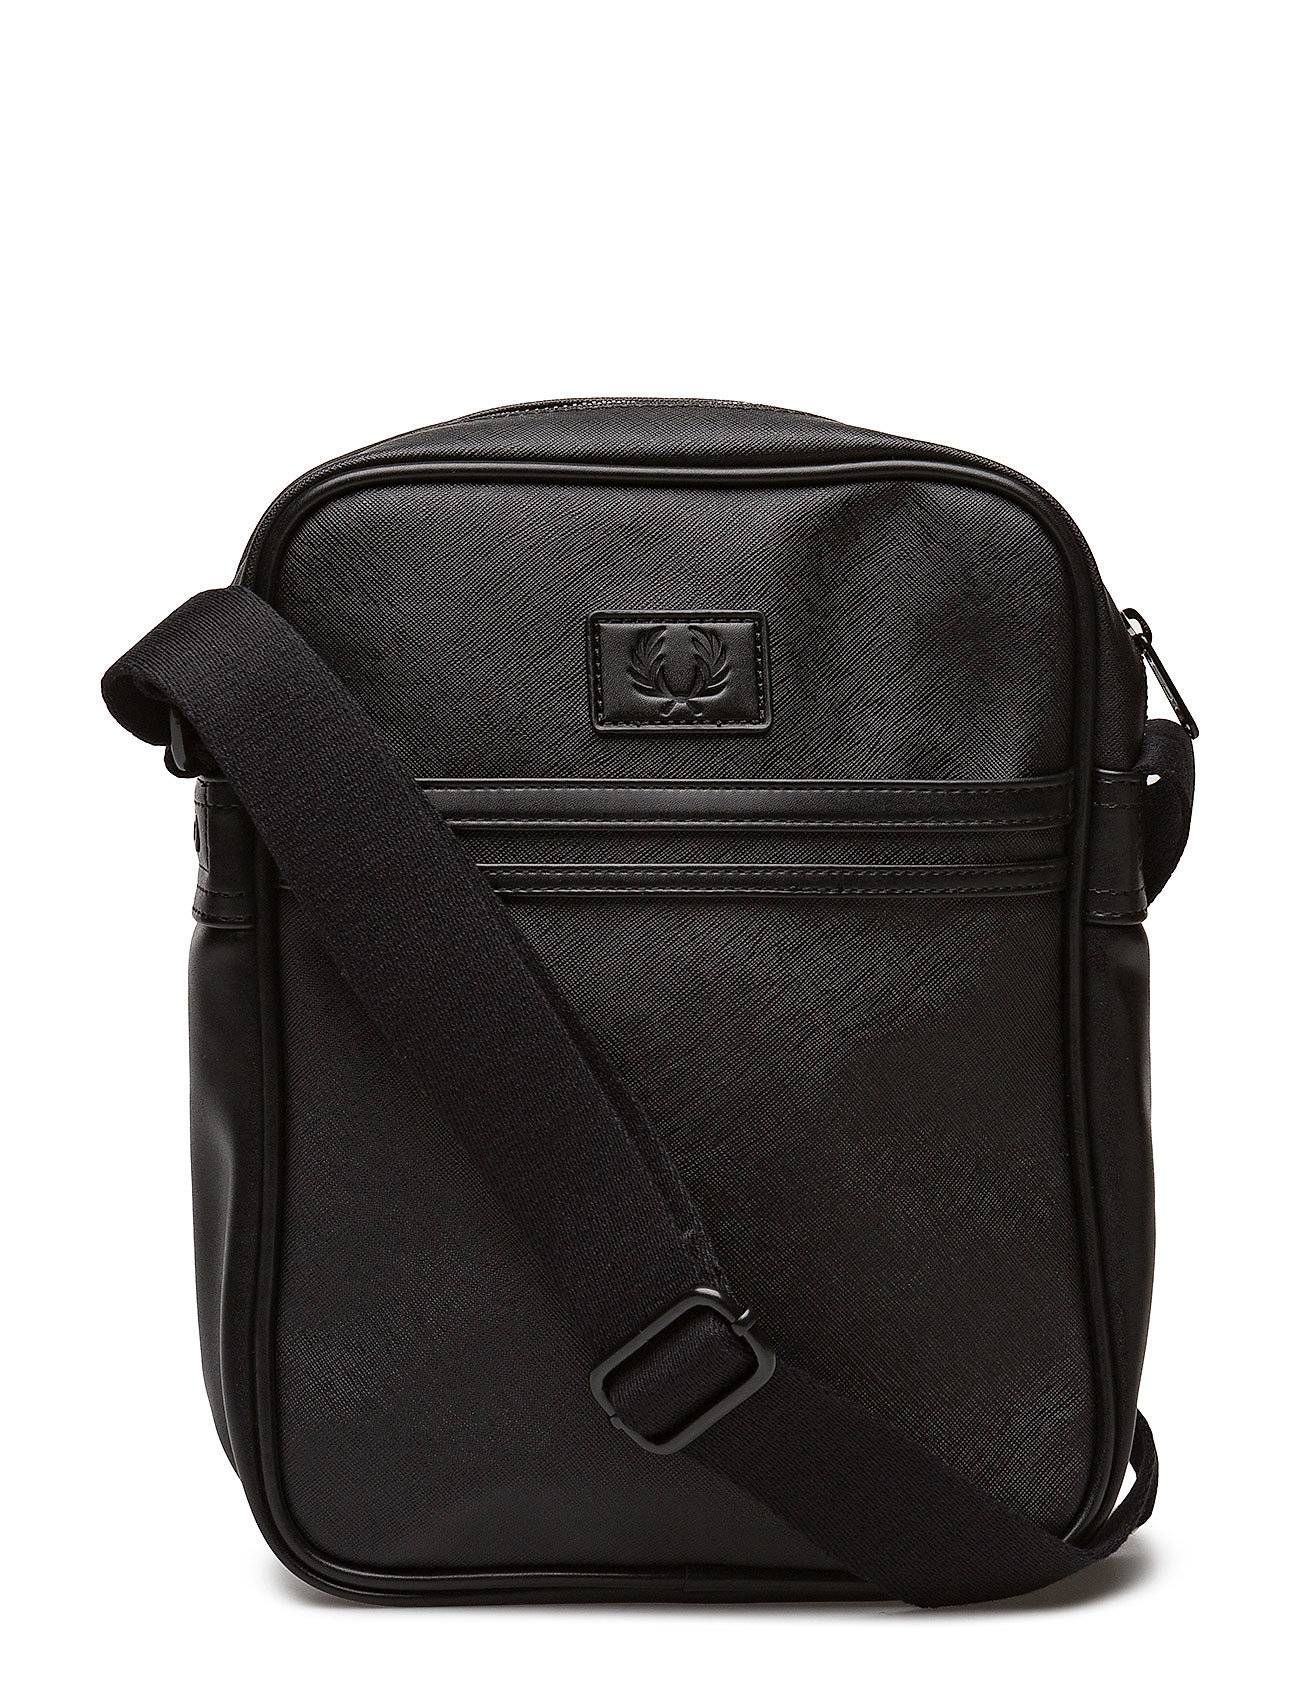 Fred Perry Saffiano Side Bag